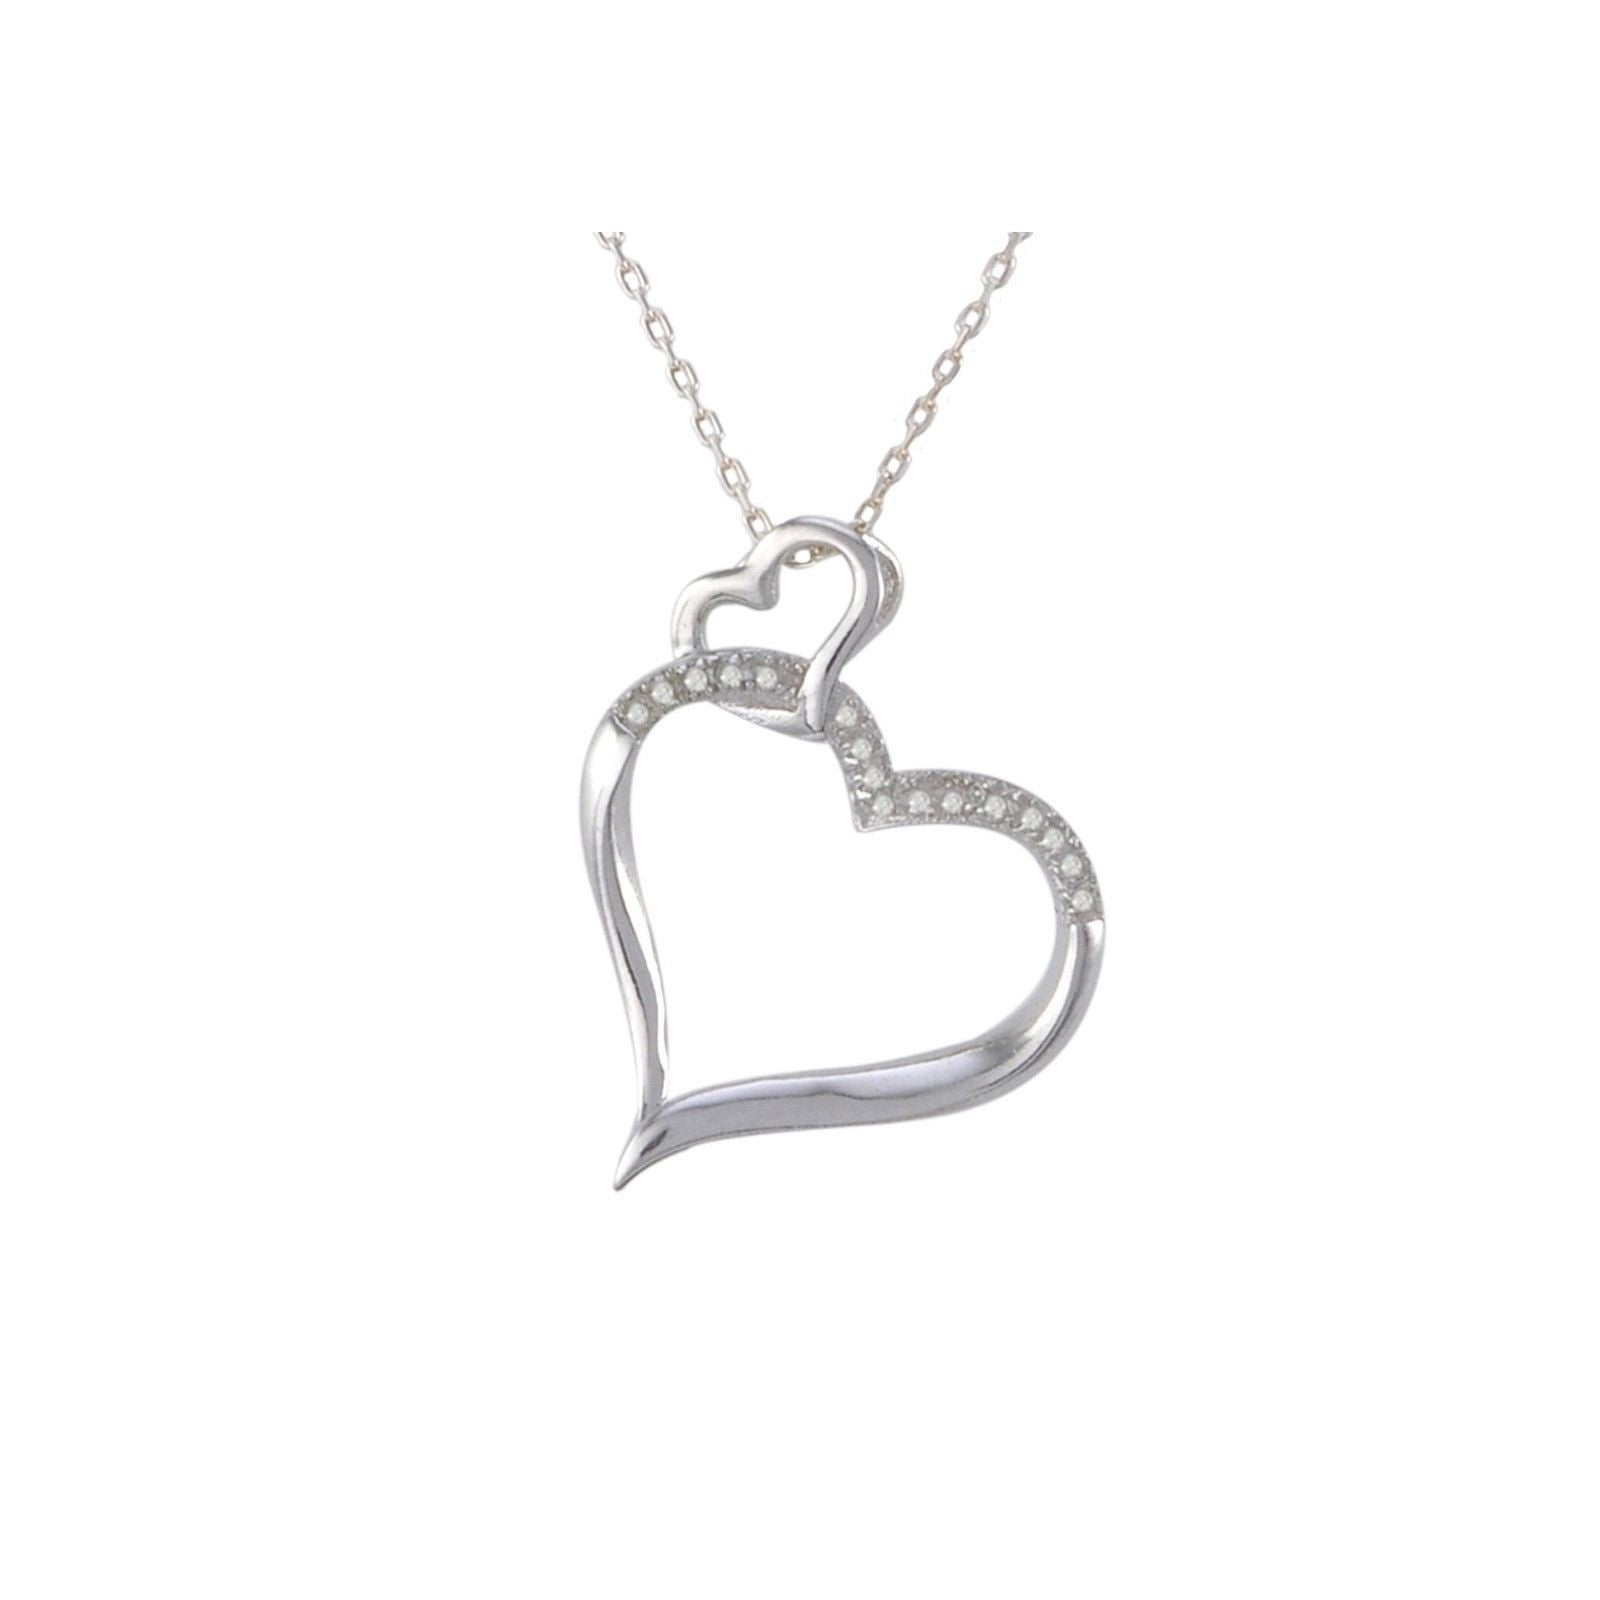 Sterling silver diamond heart pendant necklace 10ct with open sterling silver diamond heart pendant necklace 10ct with open heart bale aloadofball Choice Image